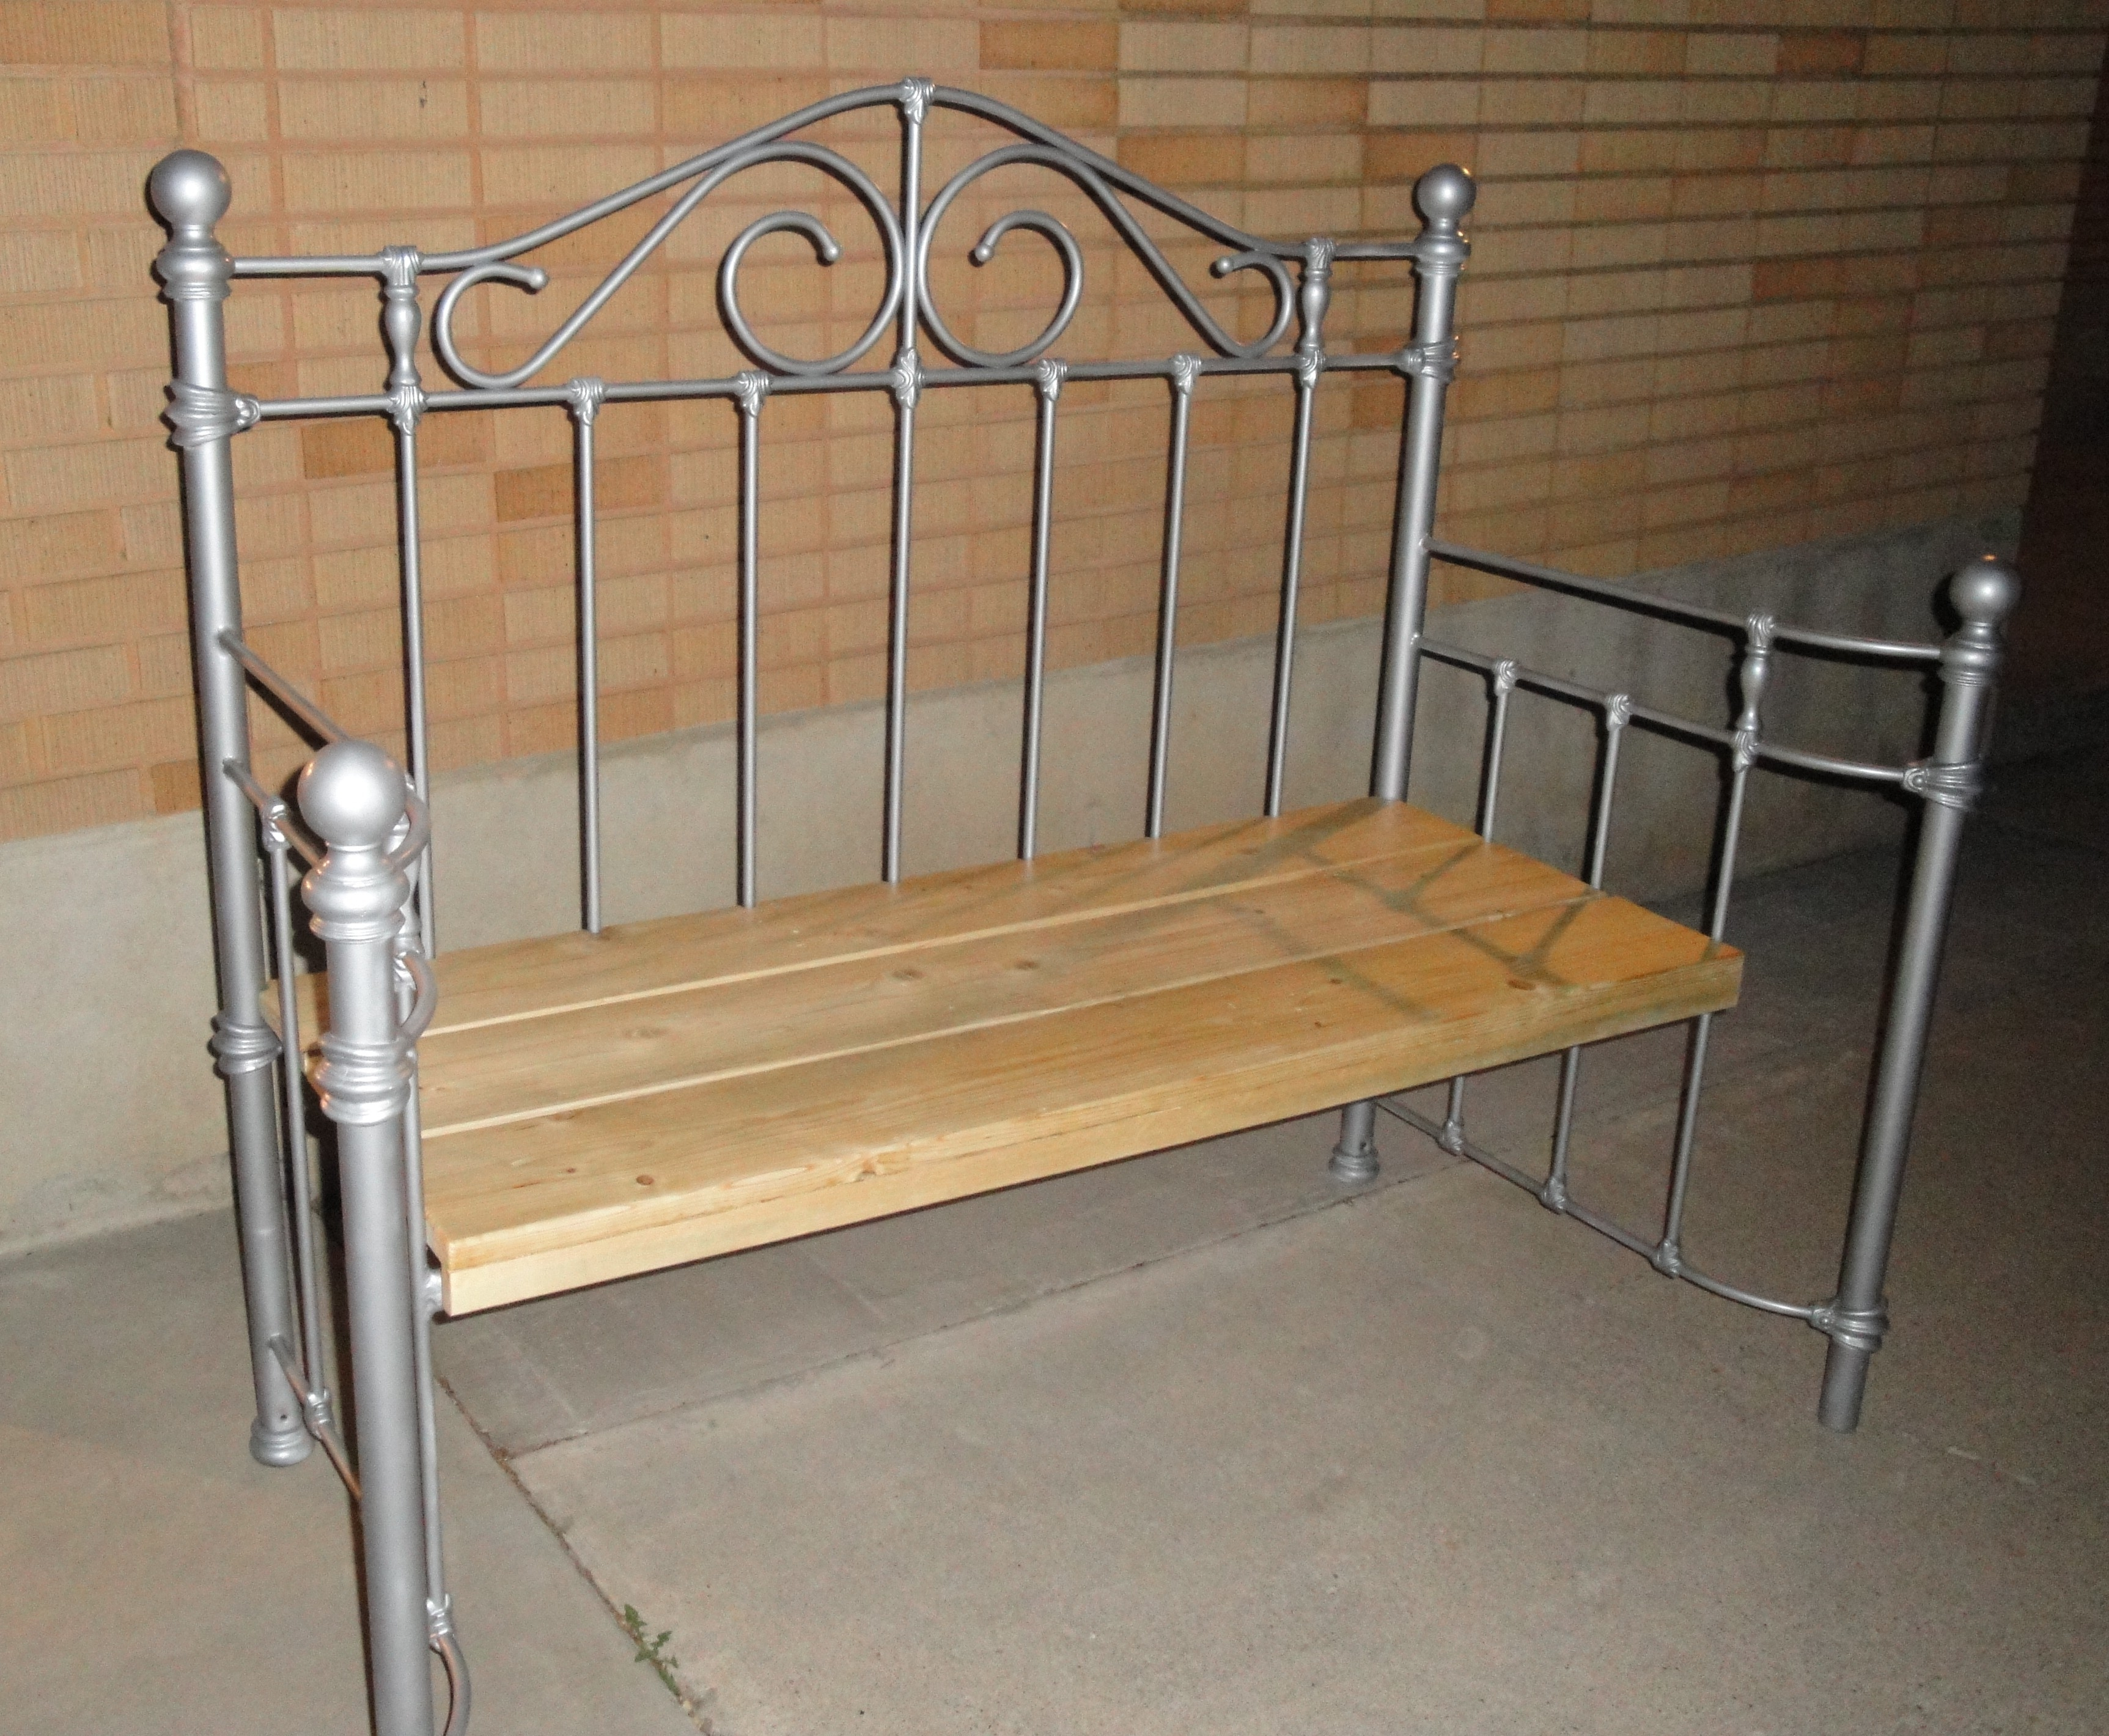 Old Metal Bed Frame Ideasturn a rusty old headboard and footboard of a bed into a garden